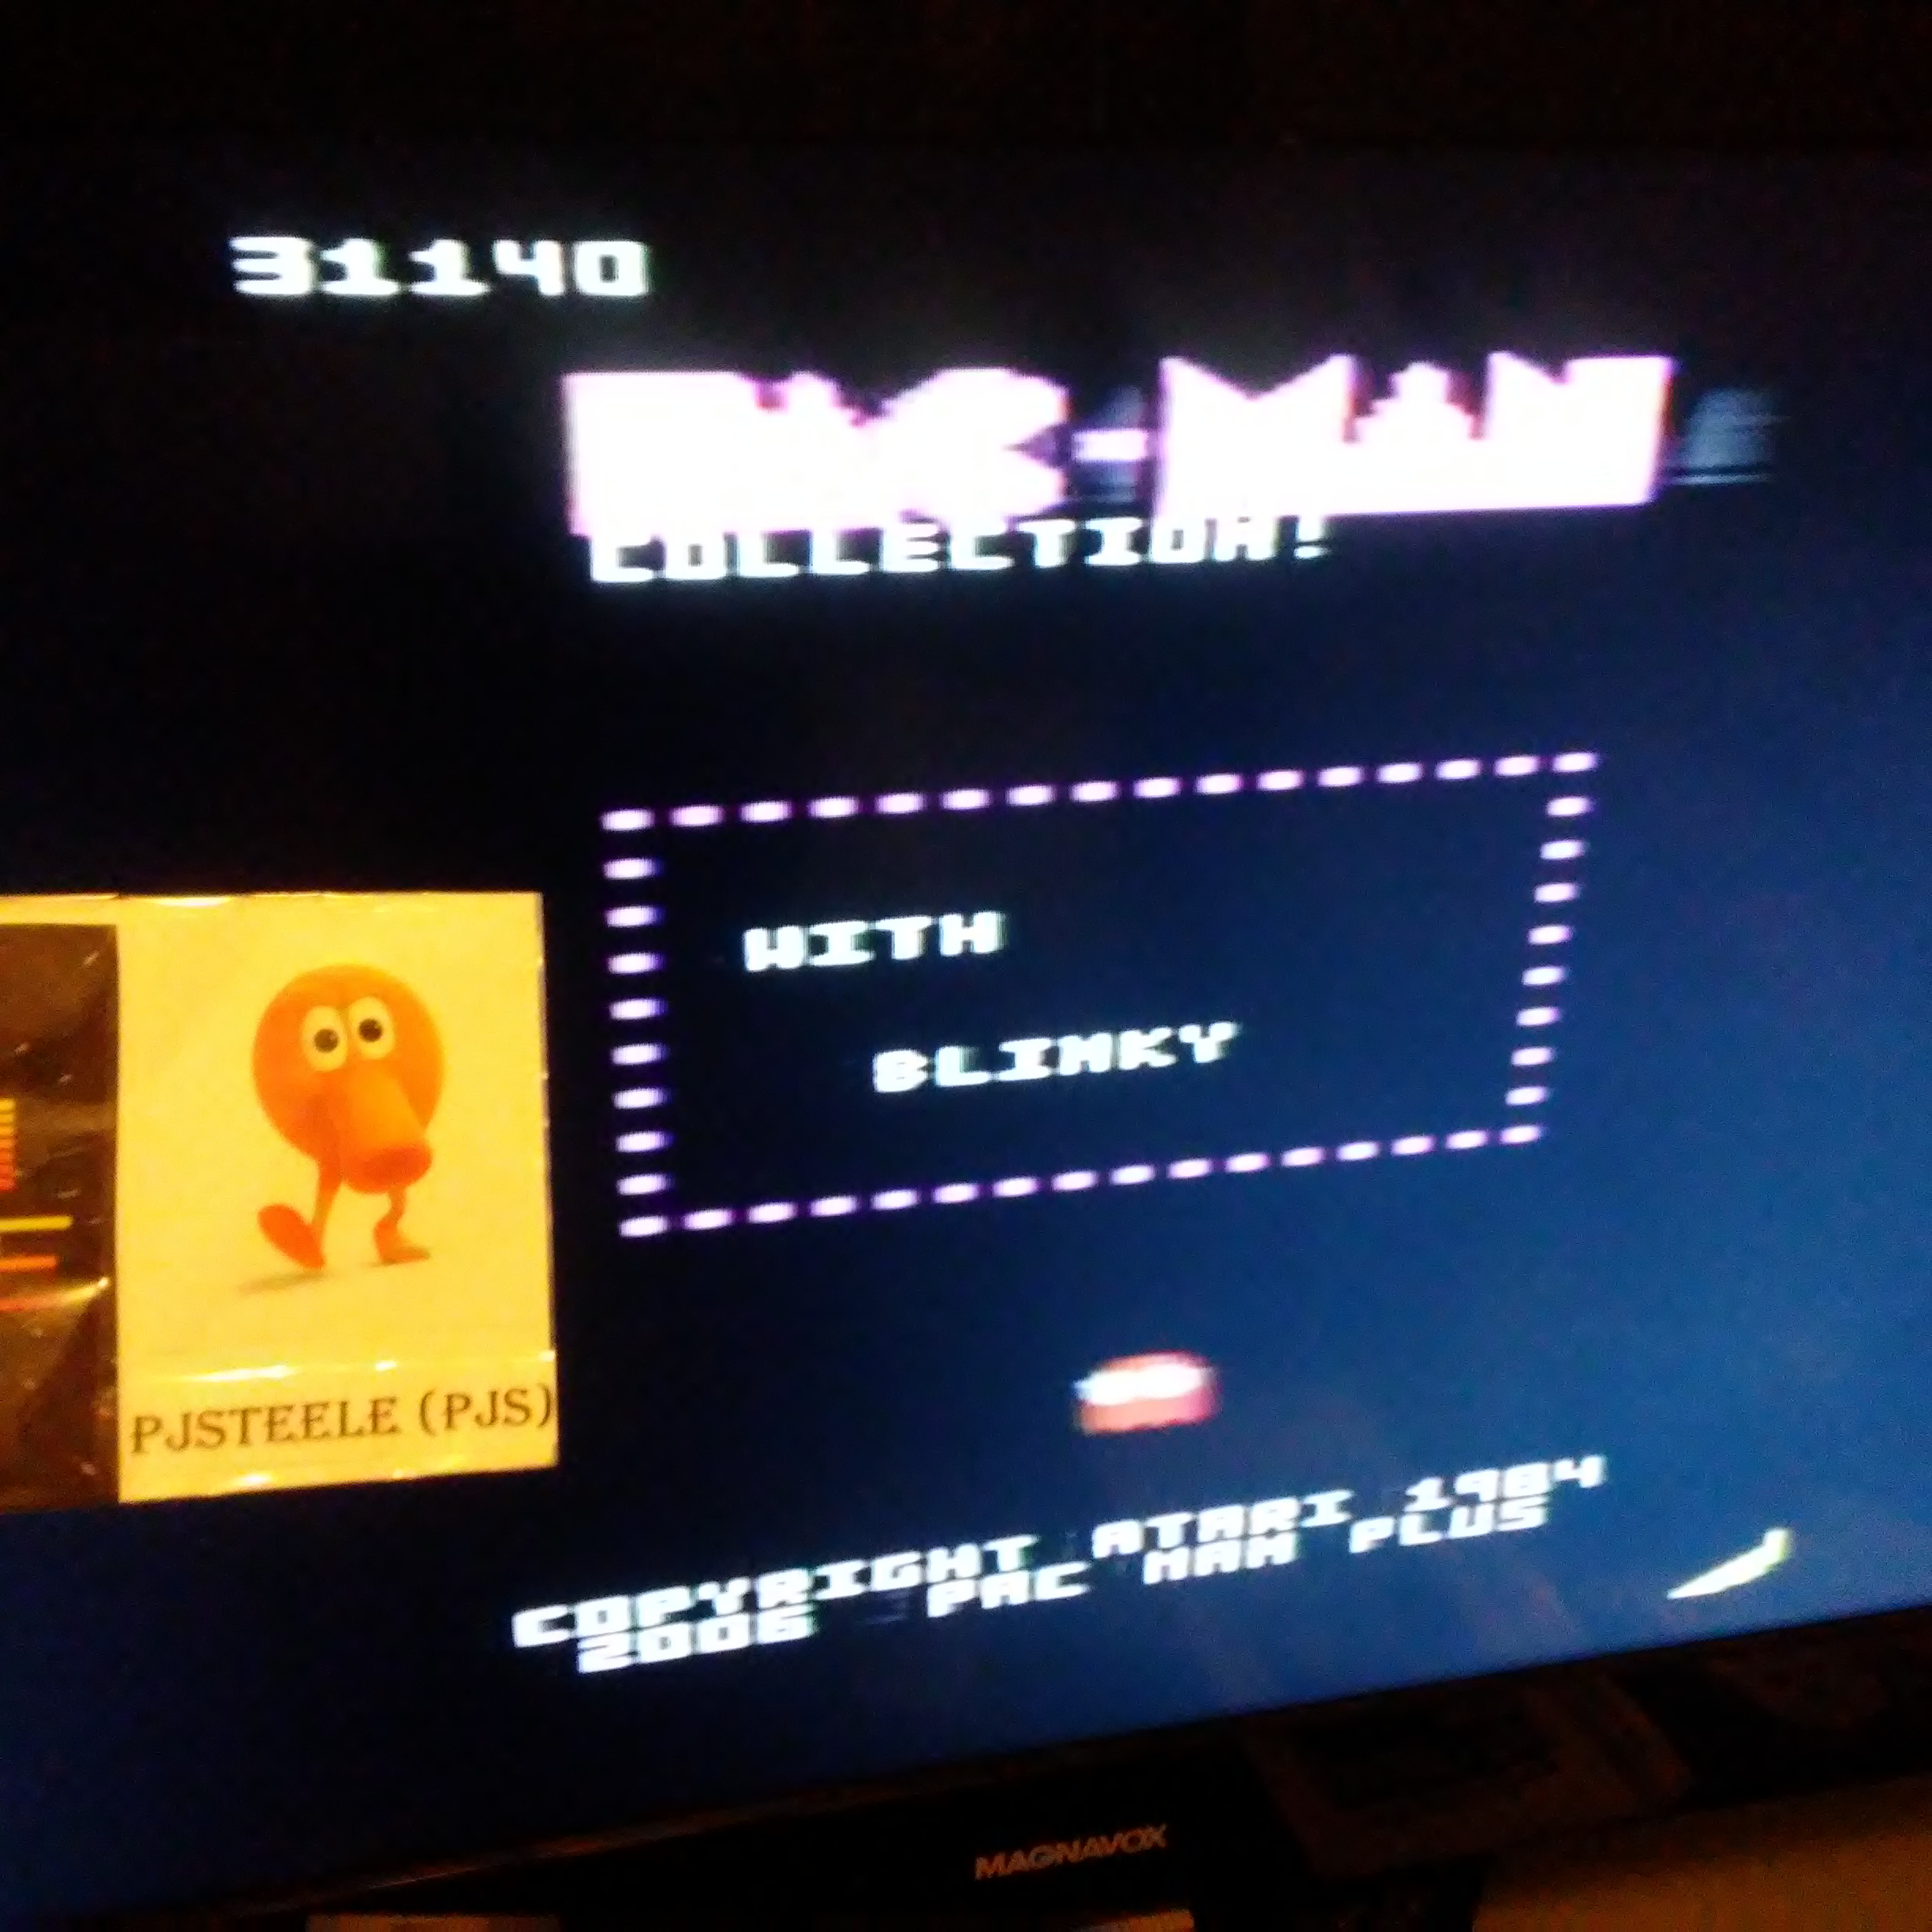 Pjsteele: Pac-Man Collection: Ms. Pac-Attack [Banana/Plus Off/Fast On] (Atari 7800) 31,140 points on 2018-09-18 20:16:42